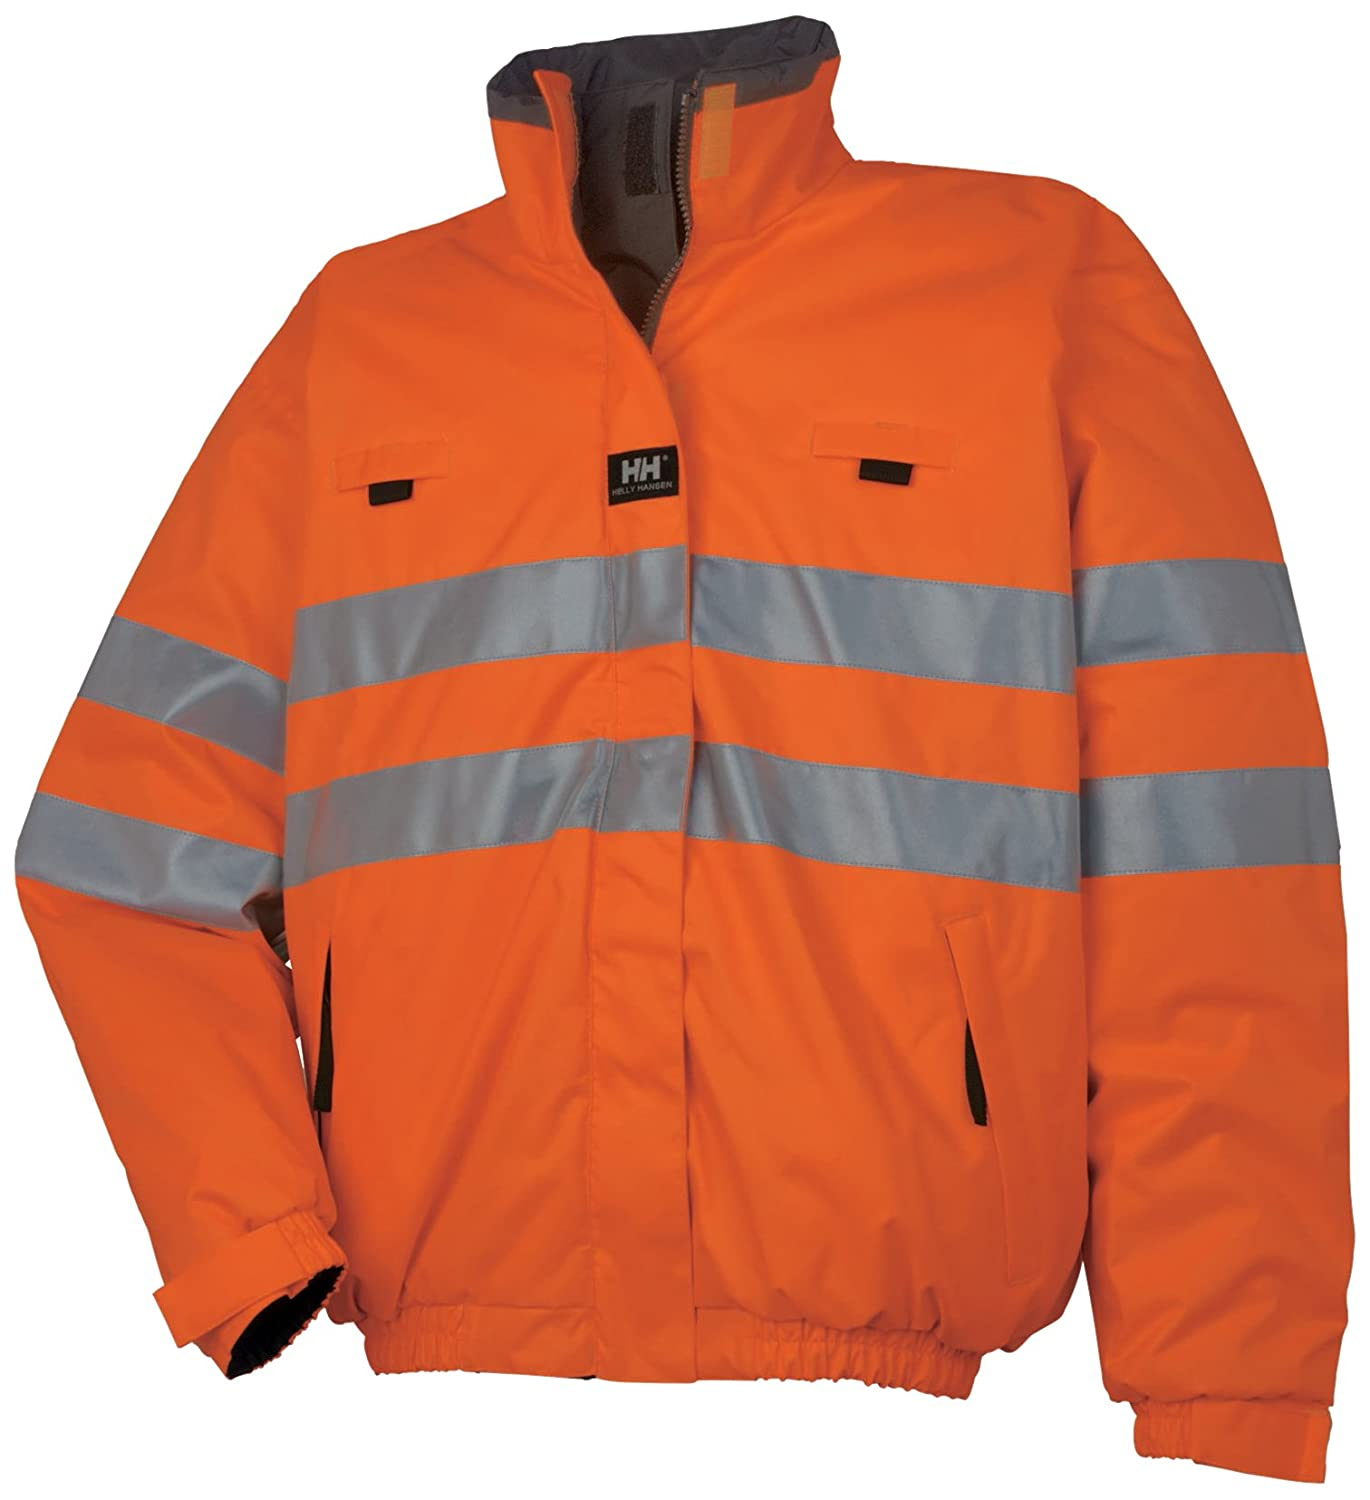 Helly Hansen Workwear Men's Motala Reversible High Visibility Jacket 73256-260-2XLJ0-Parent